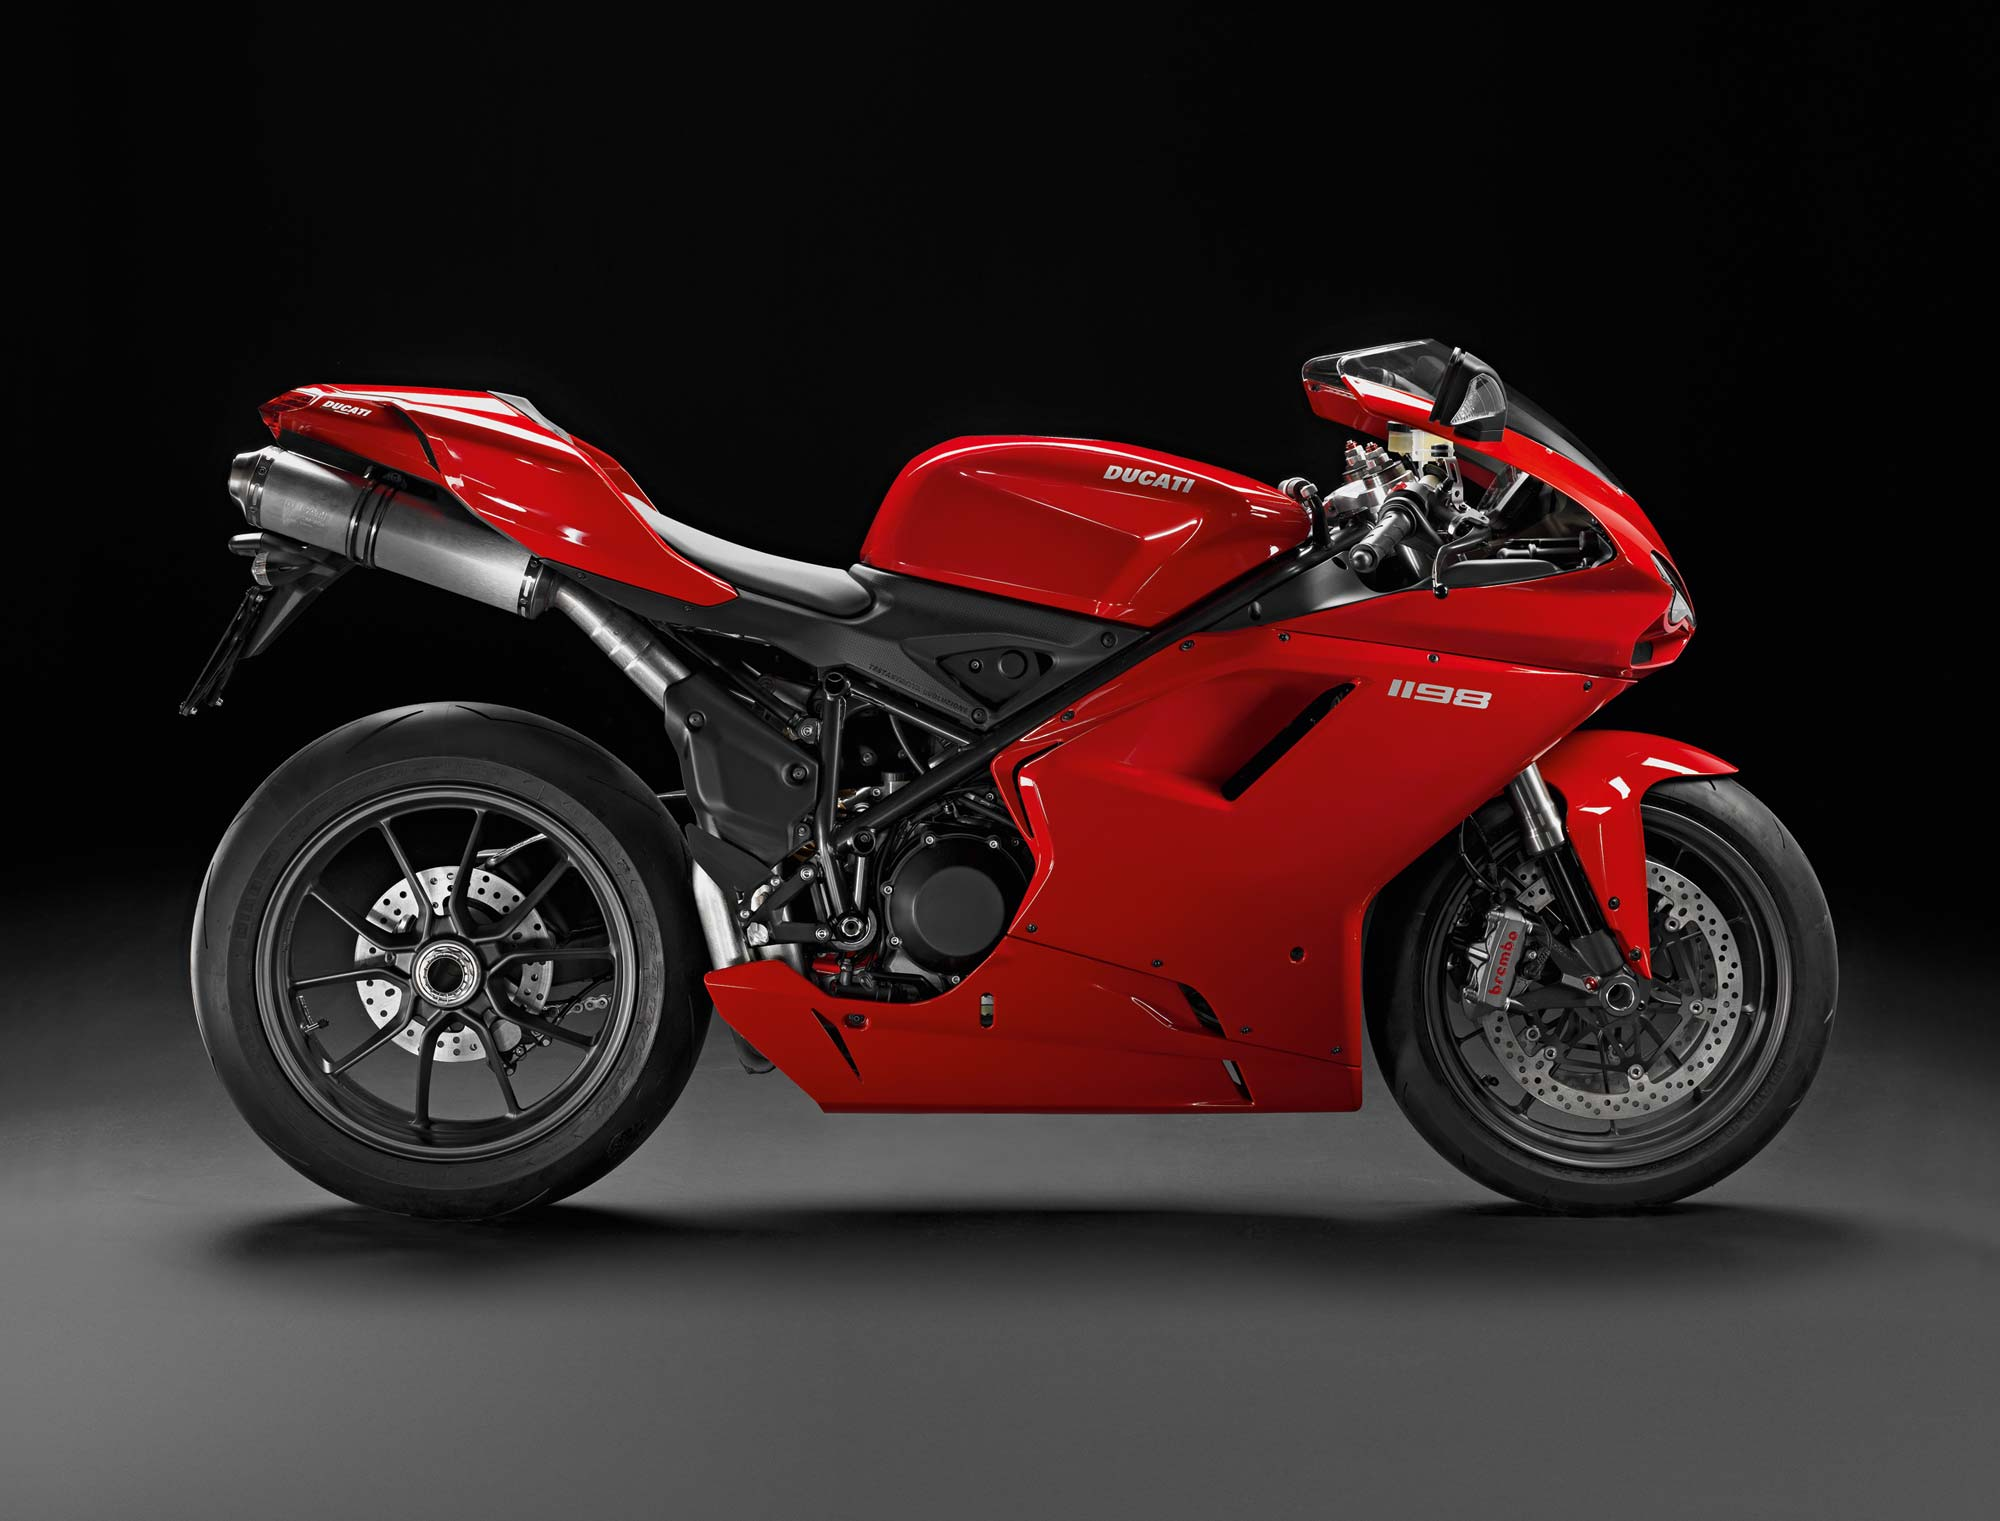 2011 Ducati Superbike 1198 Gets Free Traction Control, Data Acquisition,  and Quick Shifter – $16,495 MSRP